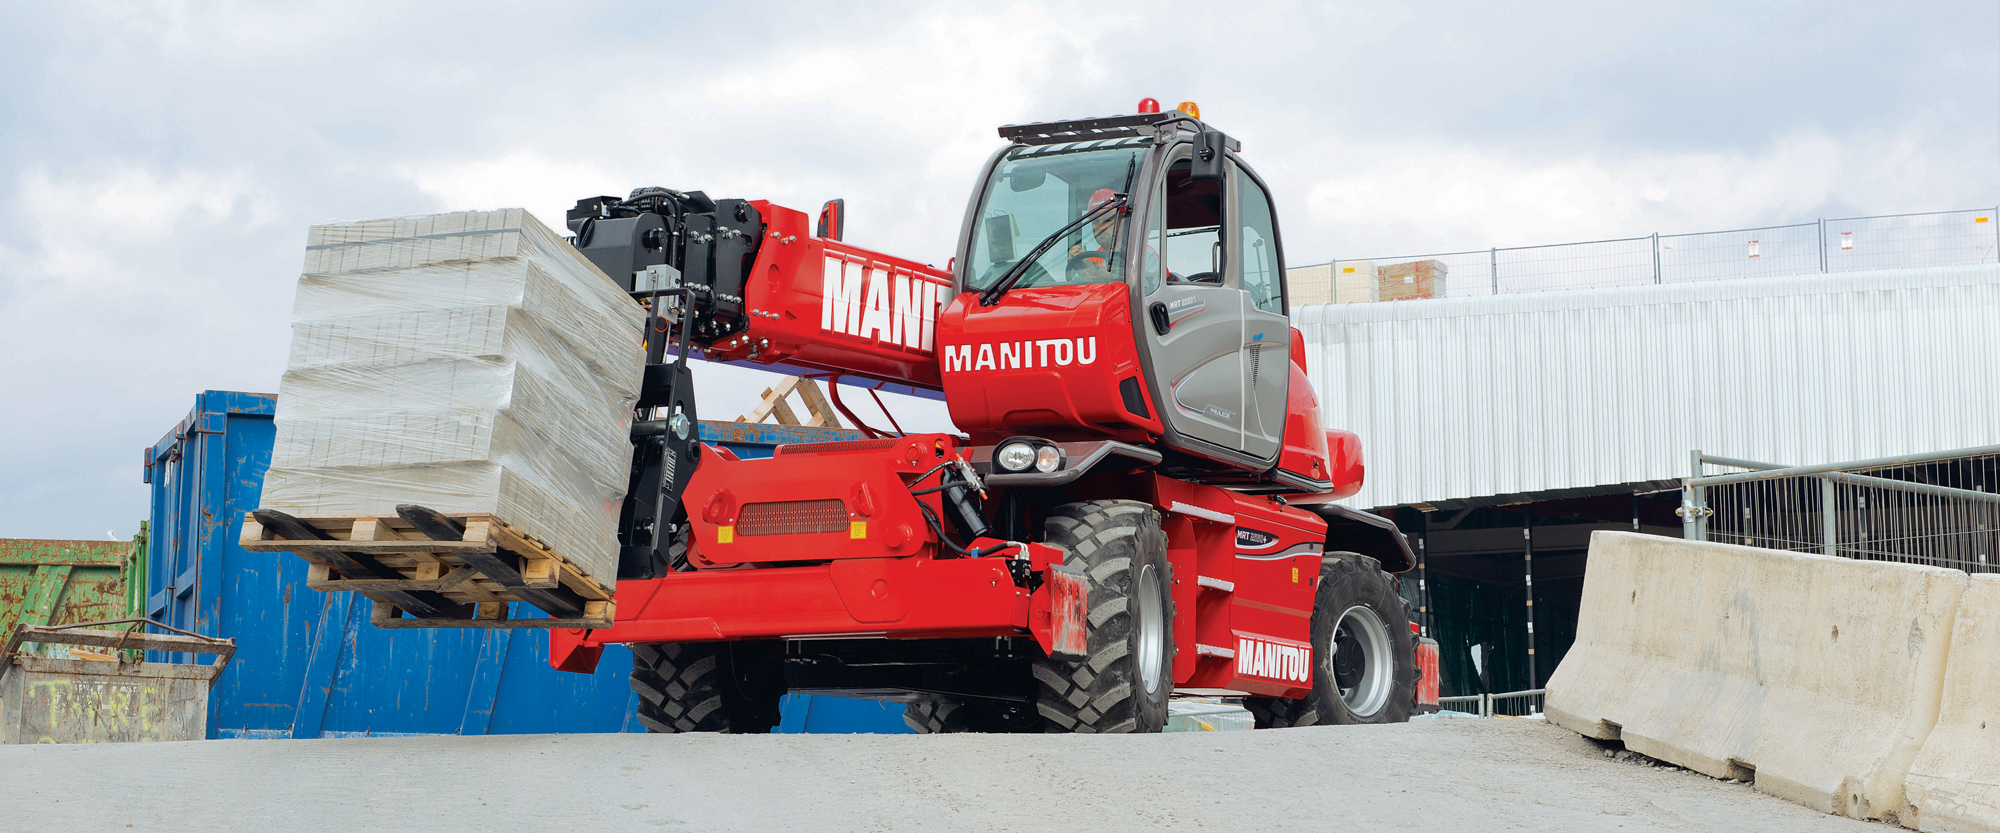 manitou-mrt-chariot-elevateur-occasion-manutention